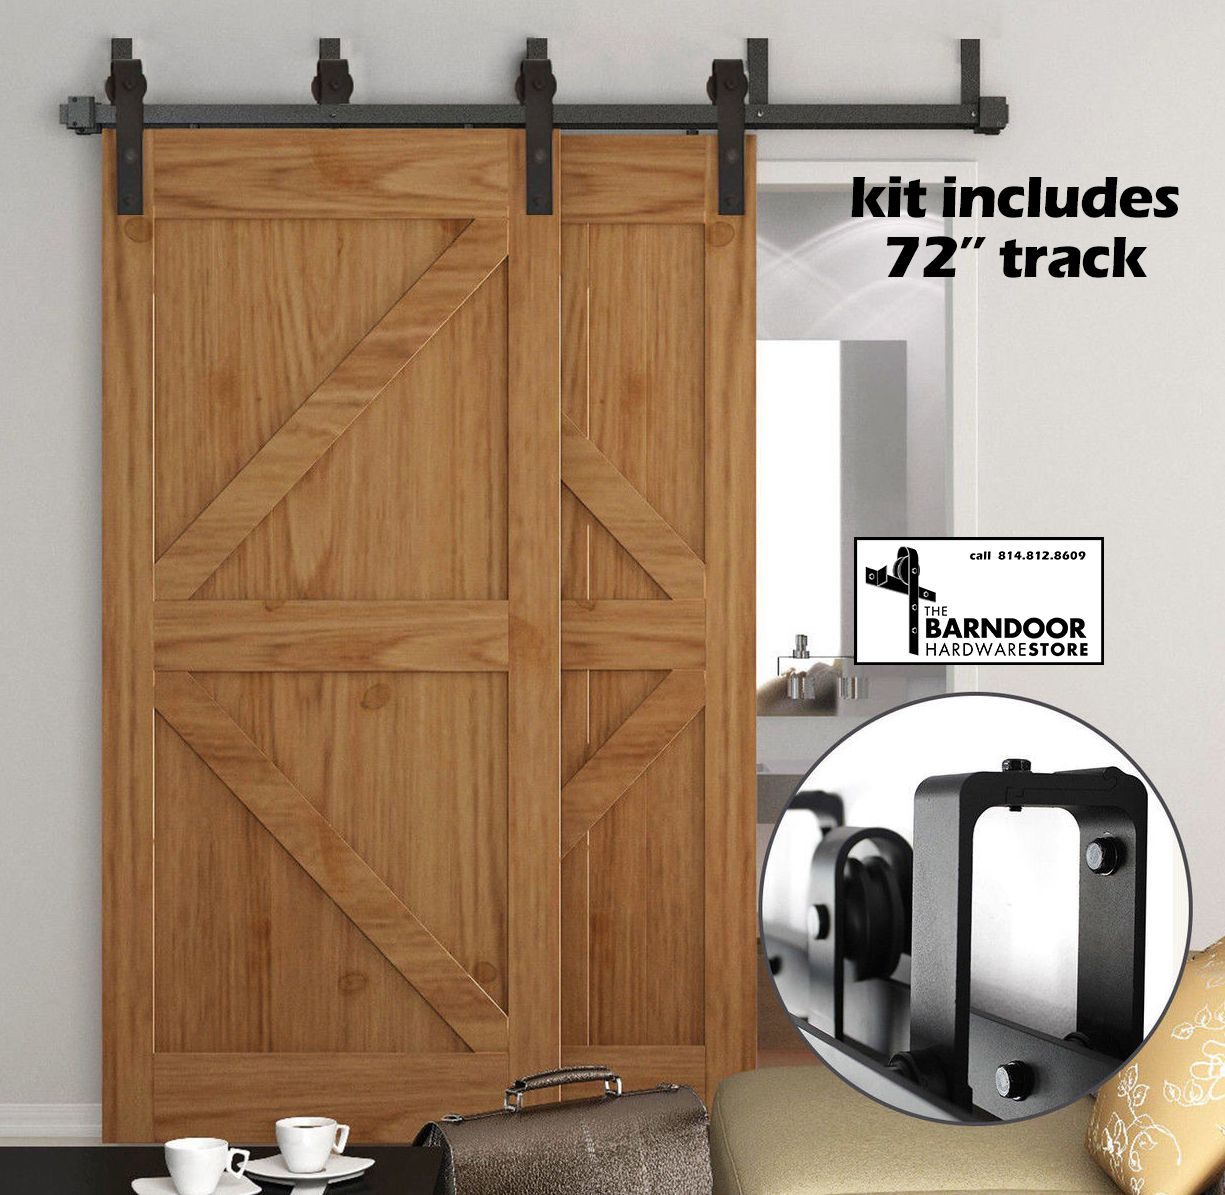 Double Track Bypass Sale Barn Door Hardware Kit For 2 Doors On 2 Tracks 22 Shipping Low Profile Brackets Barn Doors Sliding Interior Barn Doors Sliding Doors Interior